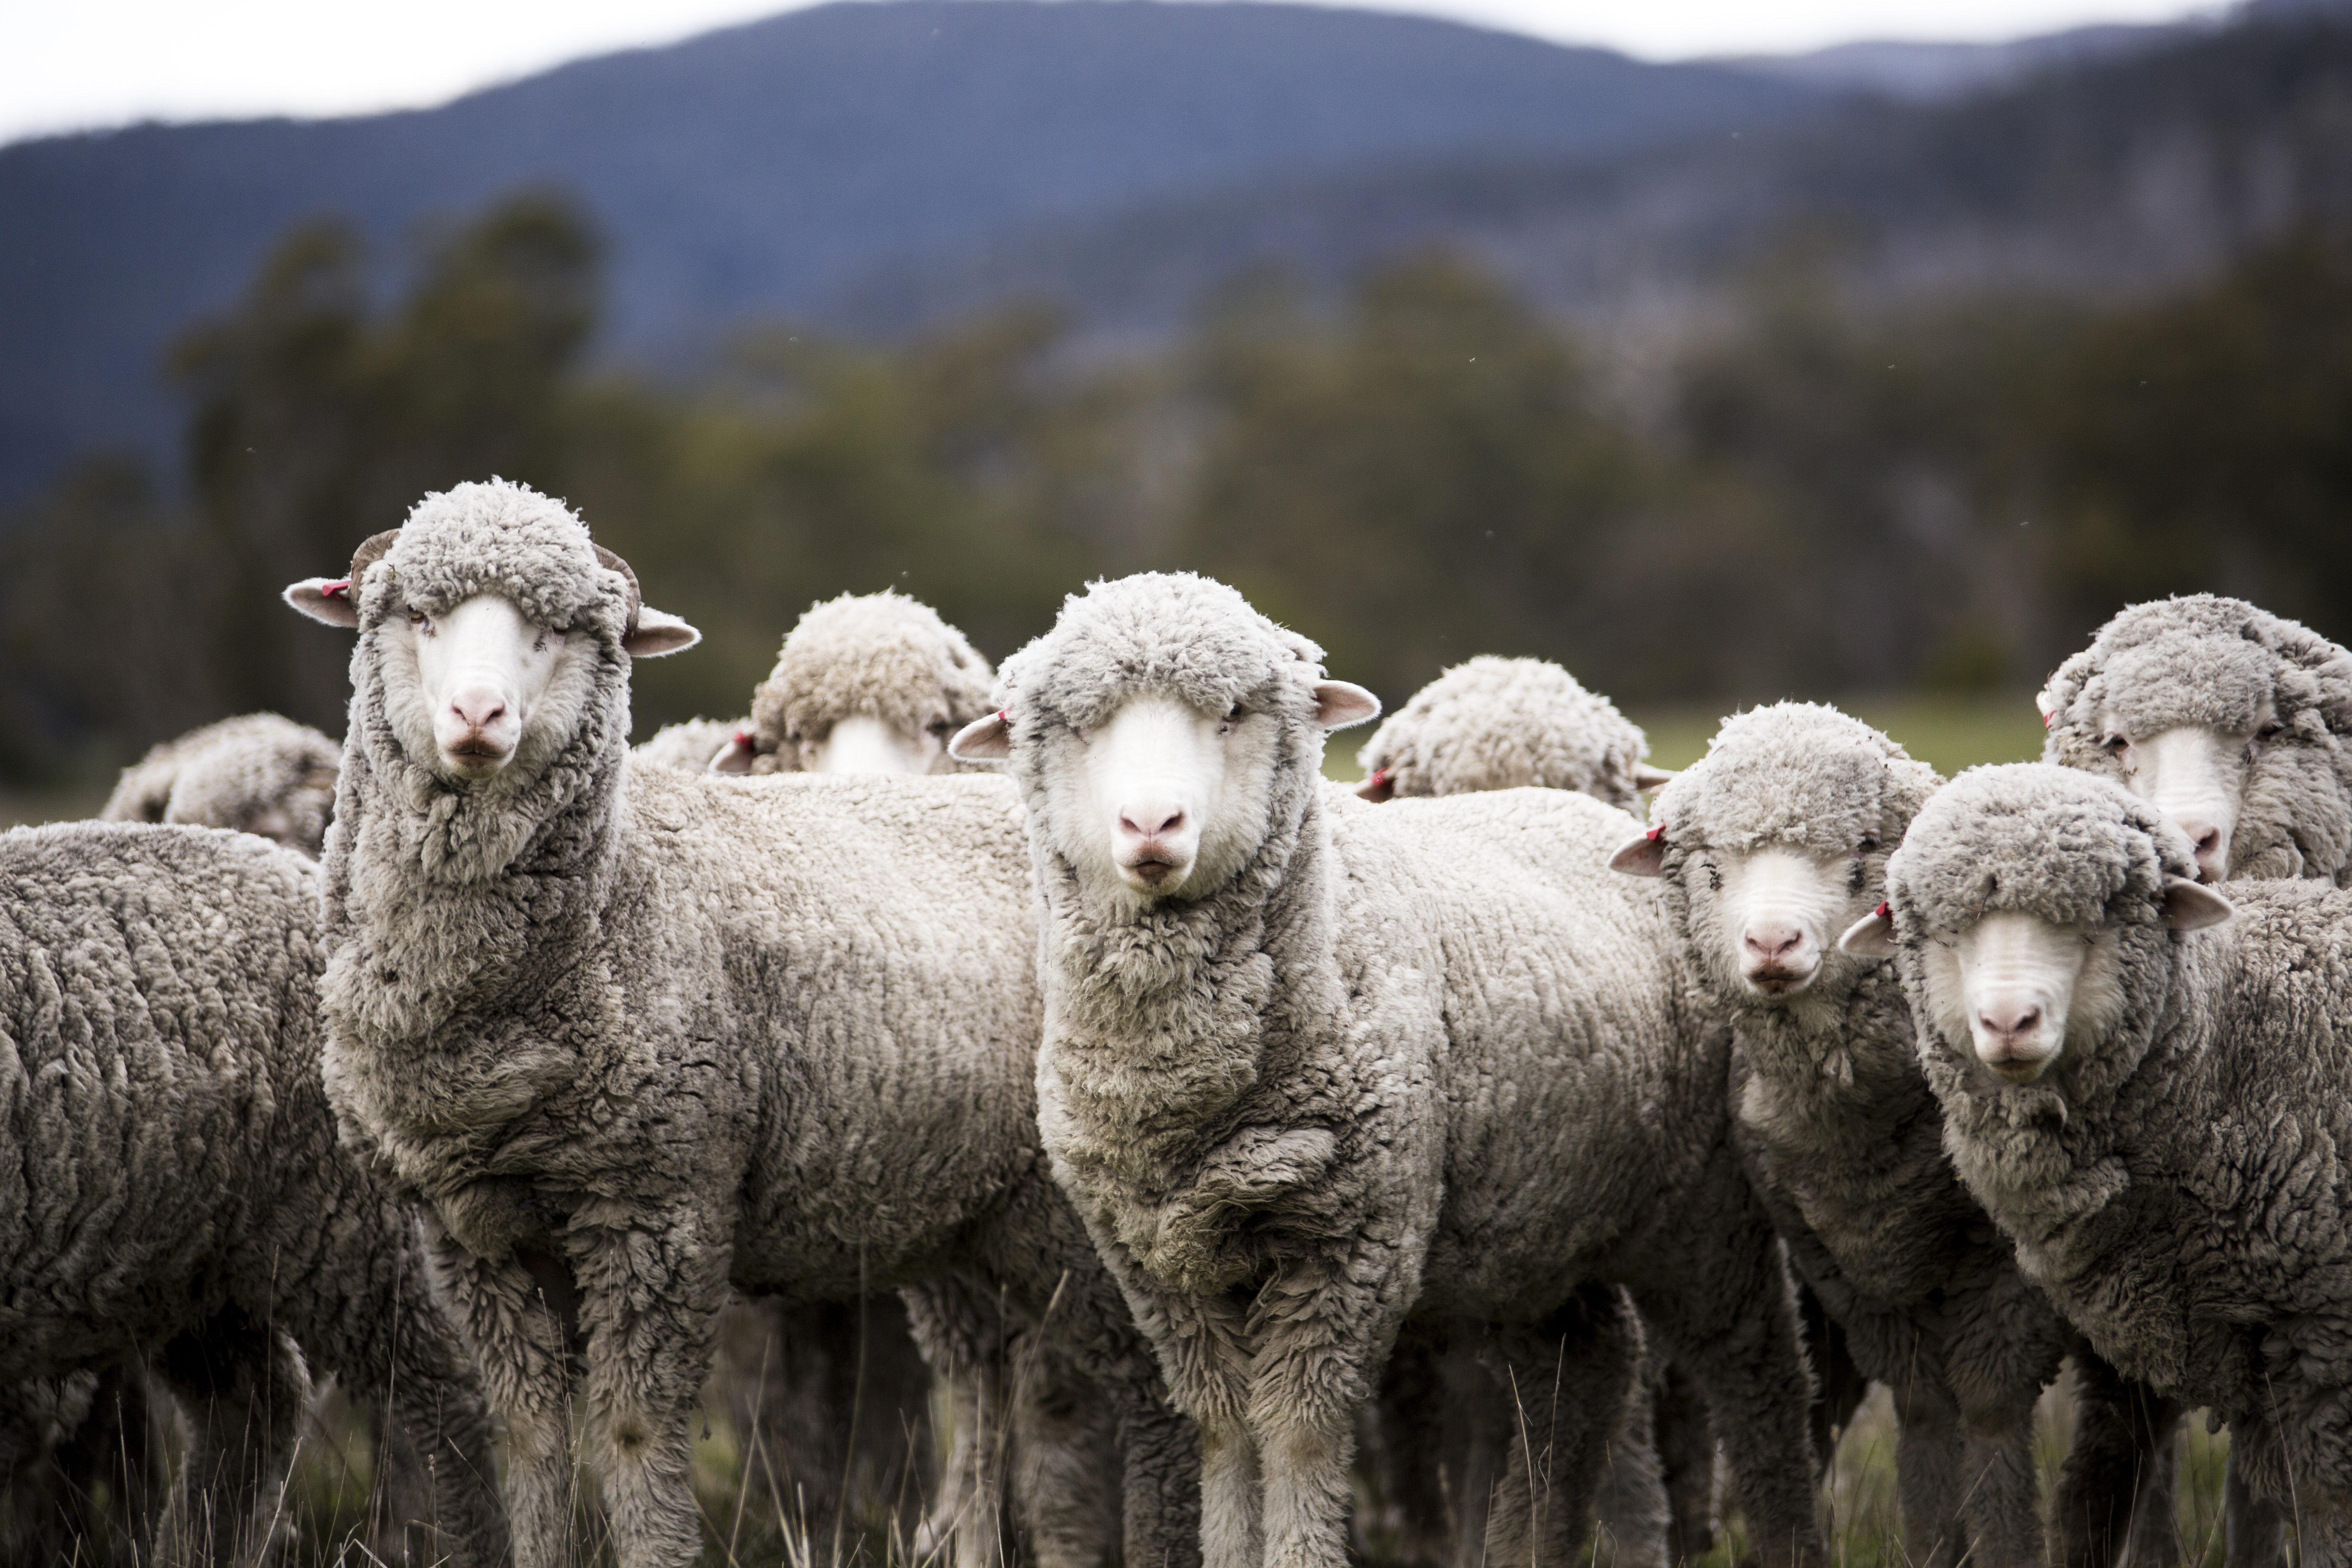 wwd.com - Tracey Meyers - Nativa, Quantis Partner for Responsibly Sourced Wool Farming Initiative